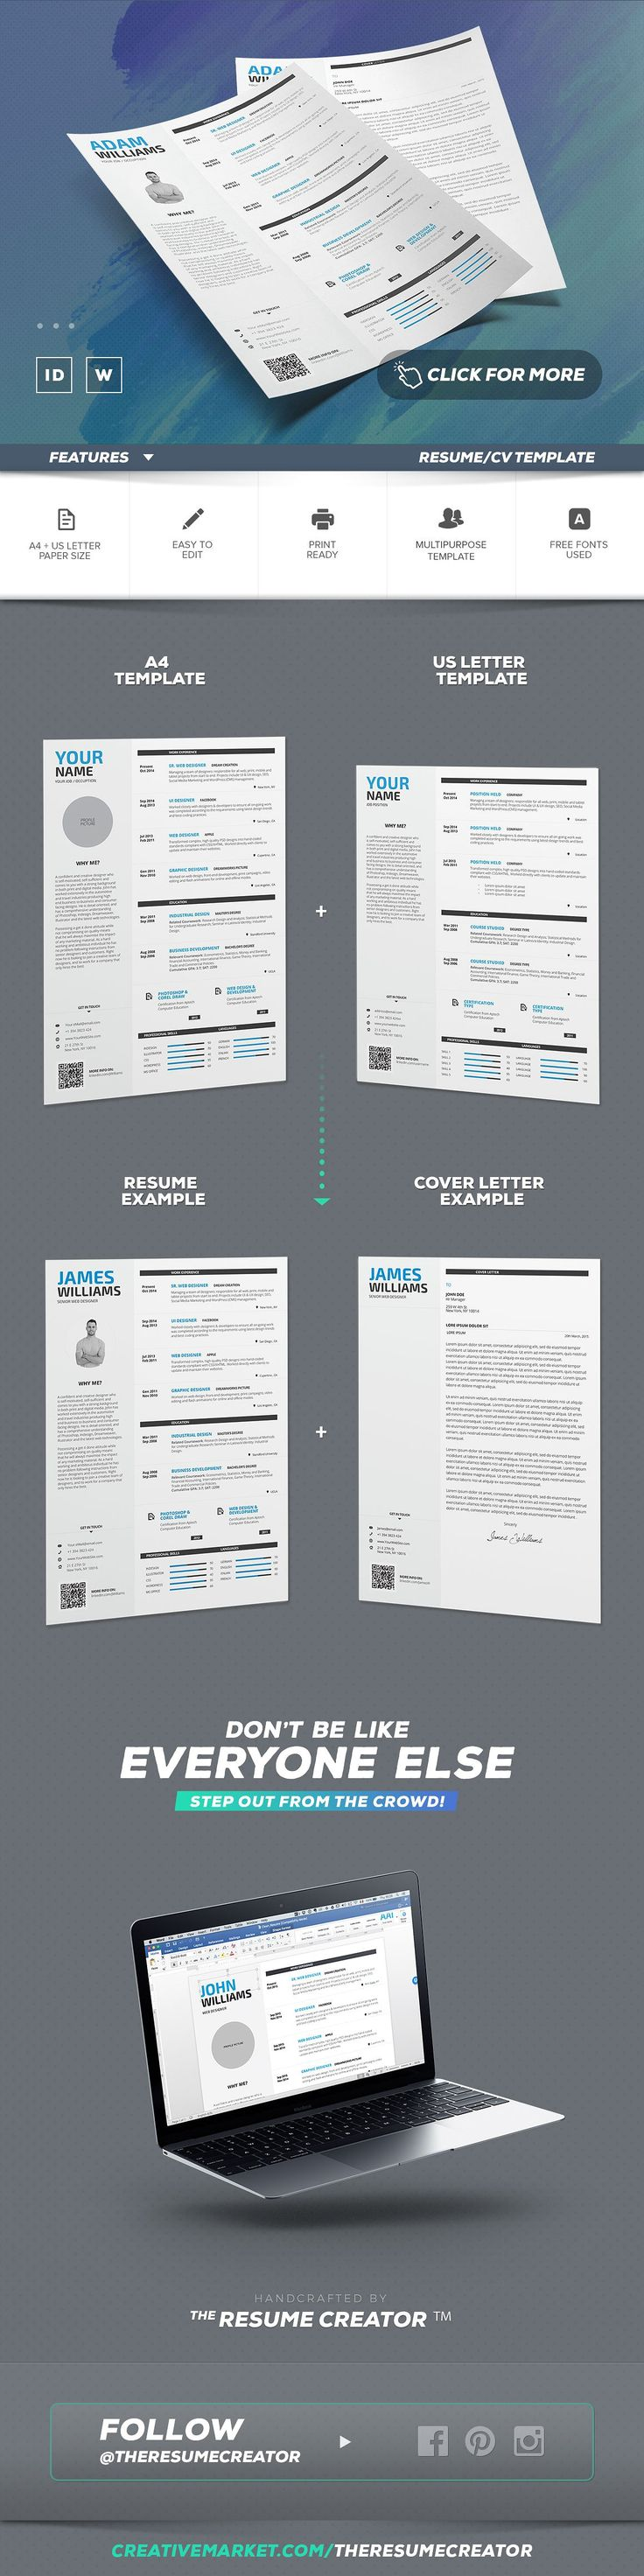 active words for resumes%0A Resume   Cv  Word Indesign Template by TheResumeCreator on